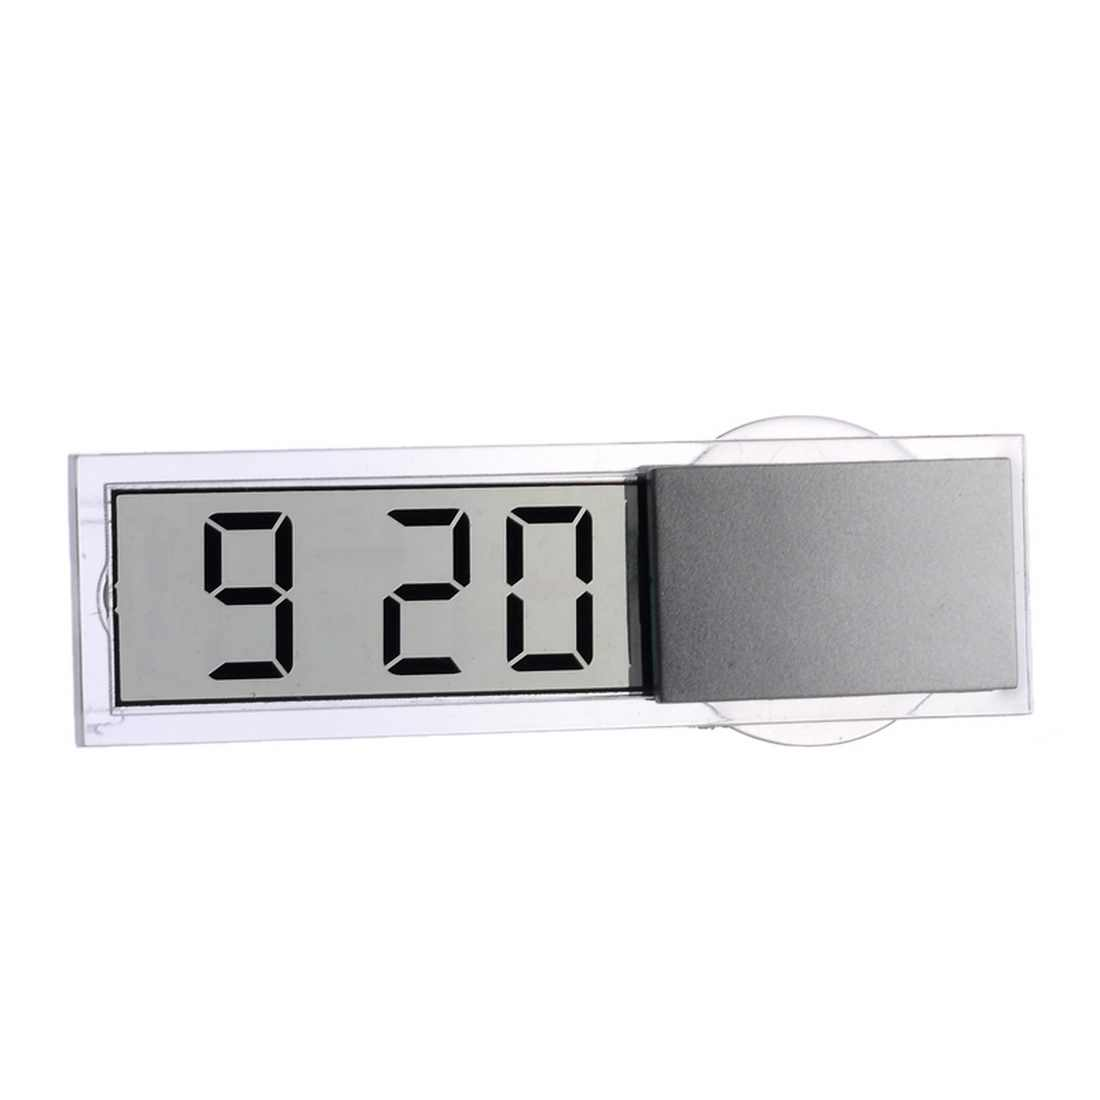 Auto Car Electronic Clock Mini Digital Car Electronic Clock Mini Durable Transparent LCD Display Digital With Sucker Universal